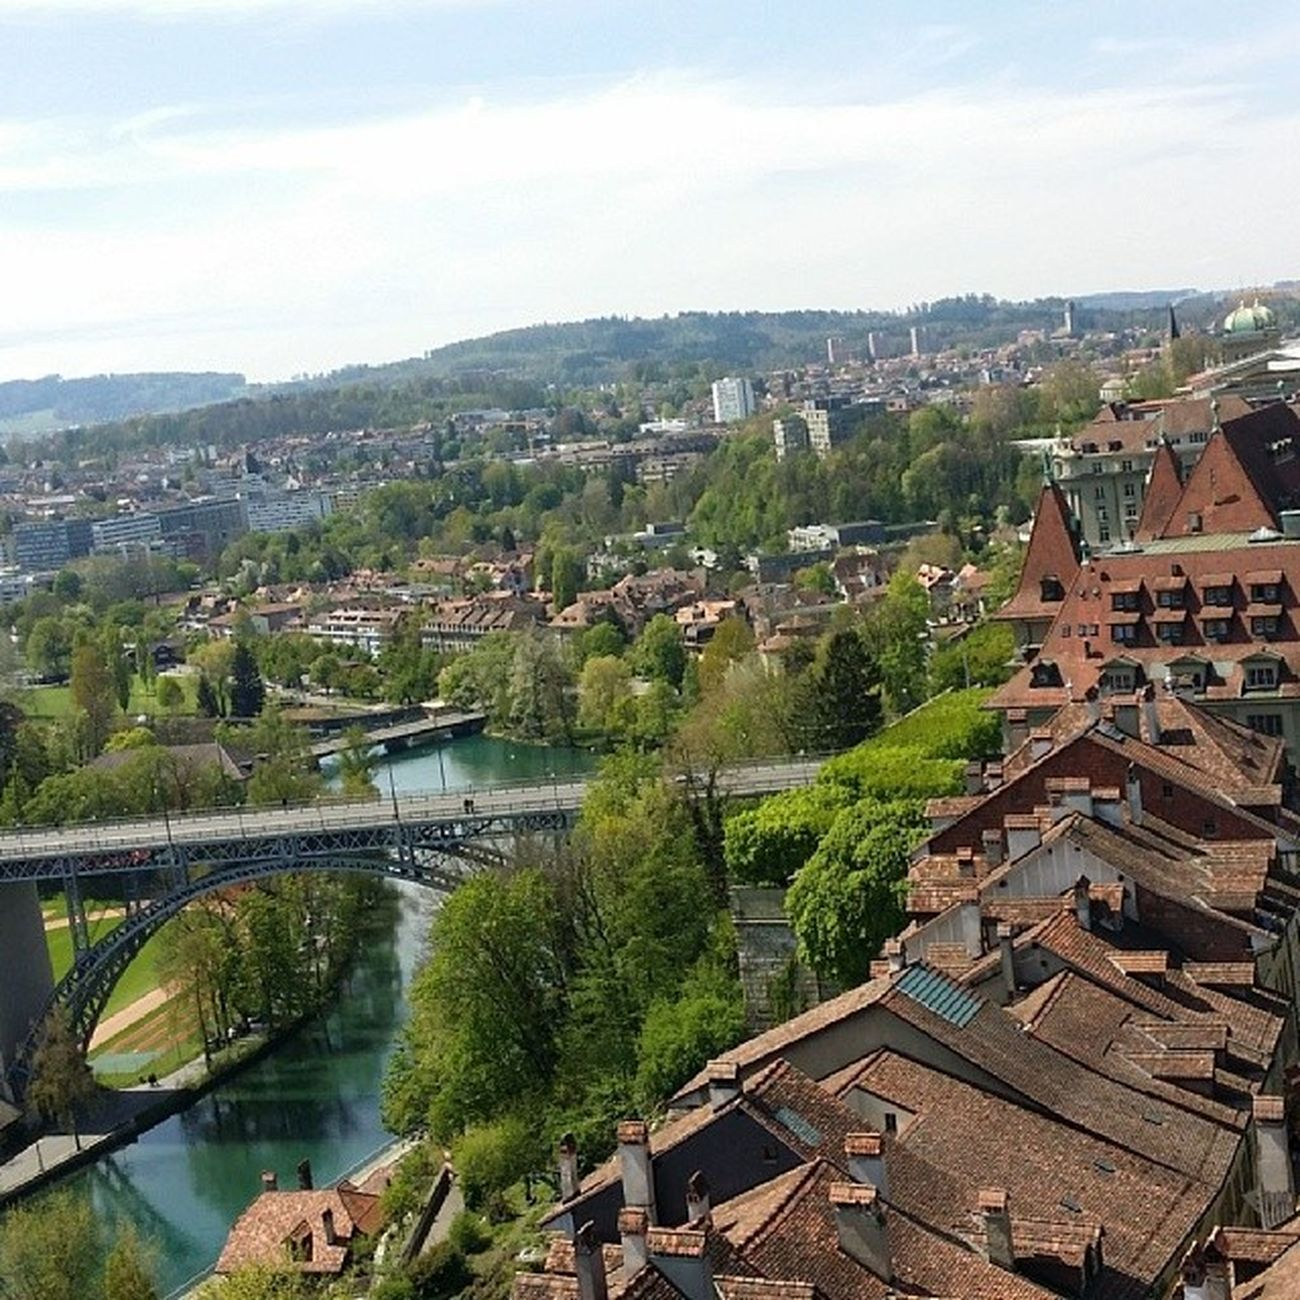 Memory_of_Switzerland Bern_theCapitalCity Wanna_go_back لك_شوق_يا_سويسرا